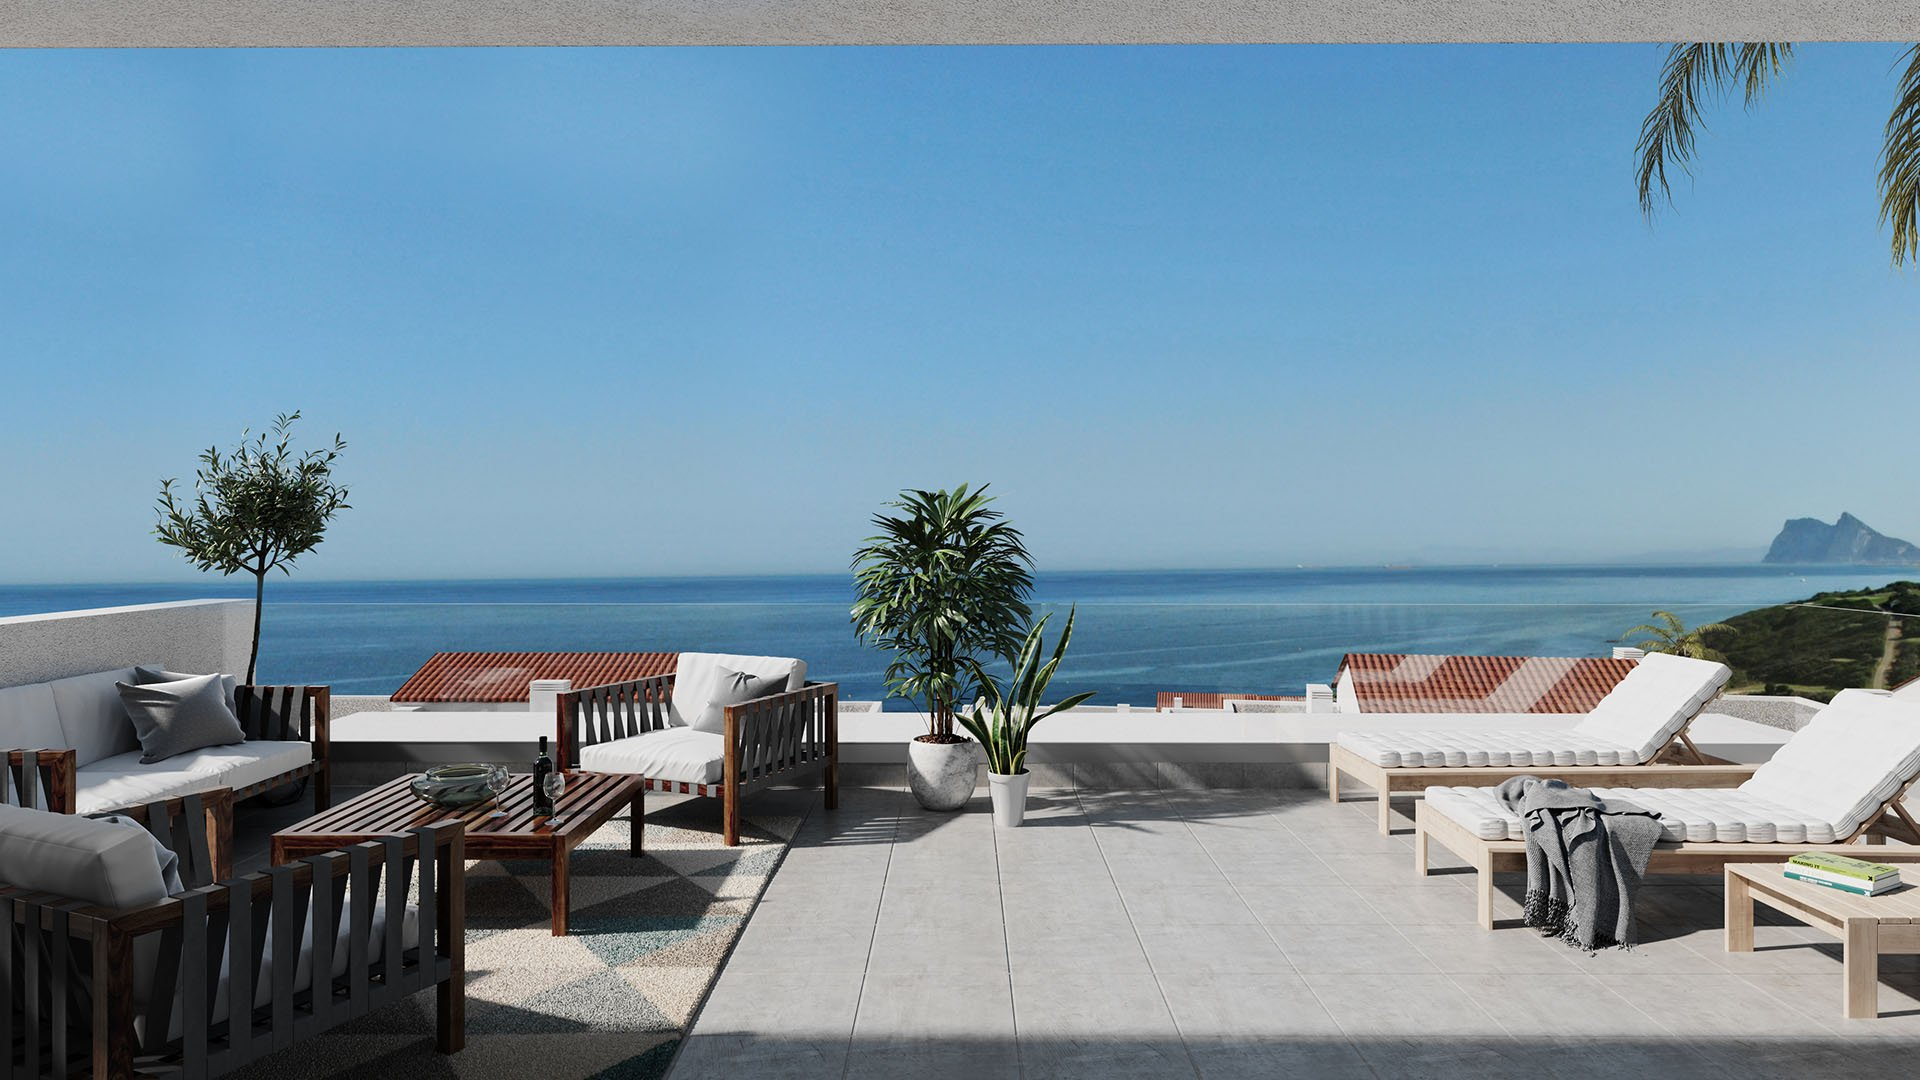 The Links: Modern penthouses 100 meters from the beach